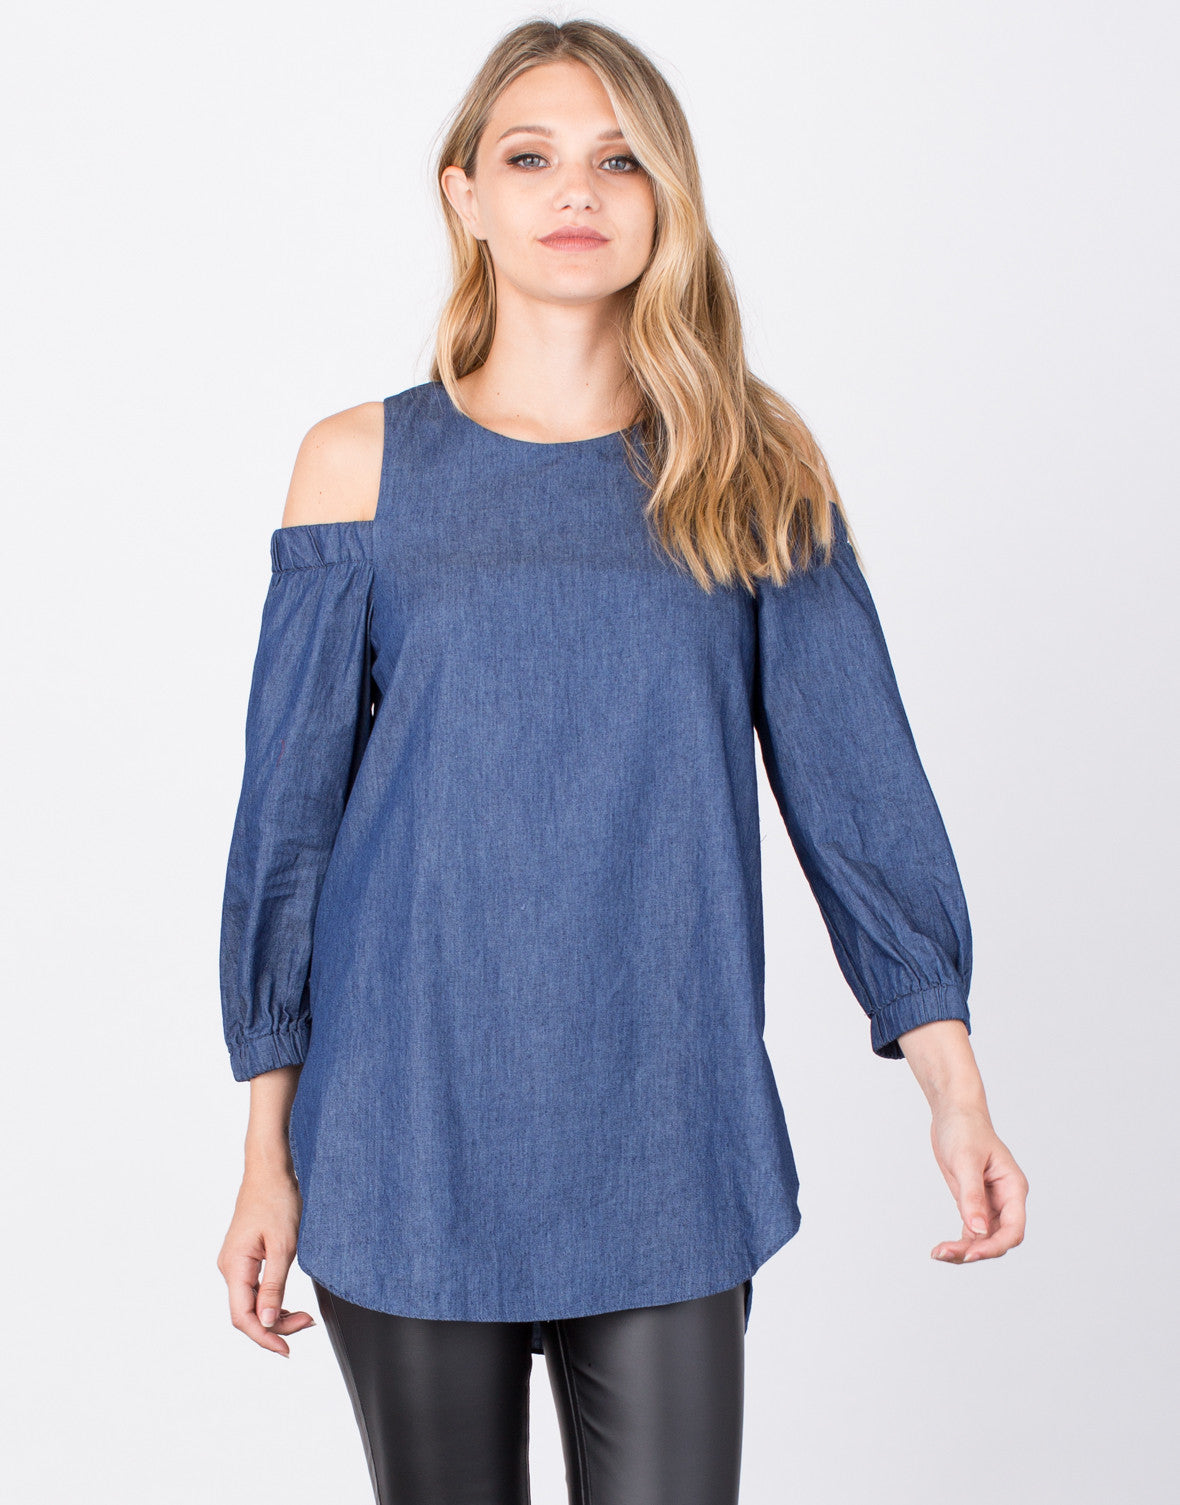 Front View of Denim Cold Shoulder Top